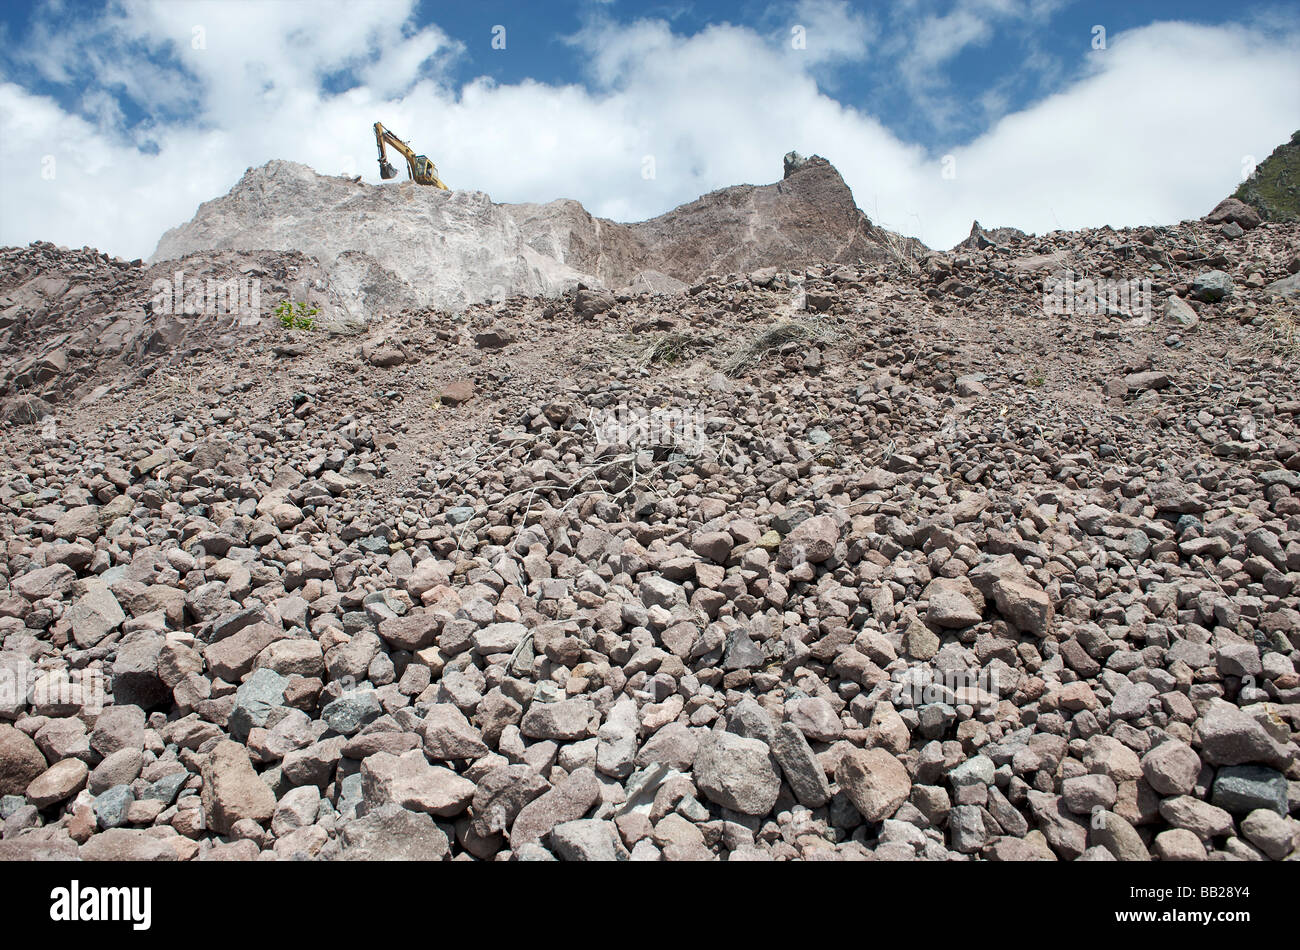 Saba stone query at Fort bay - Stock Image